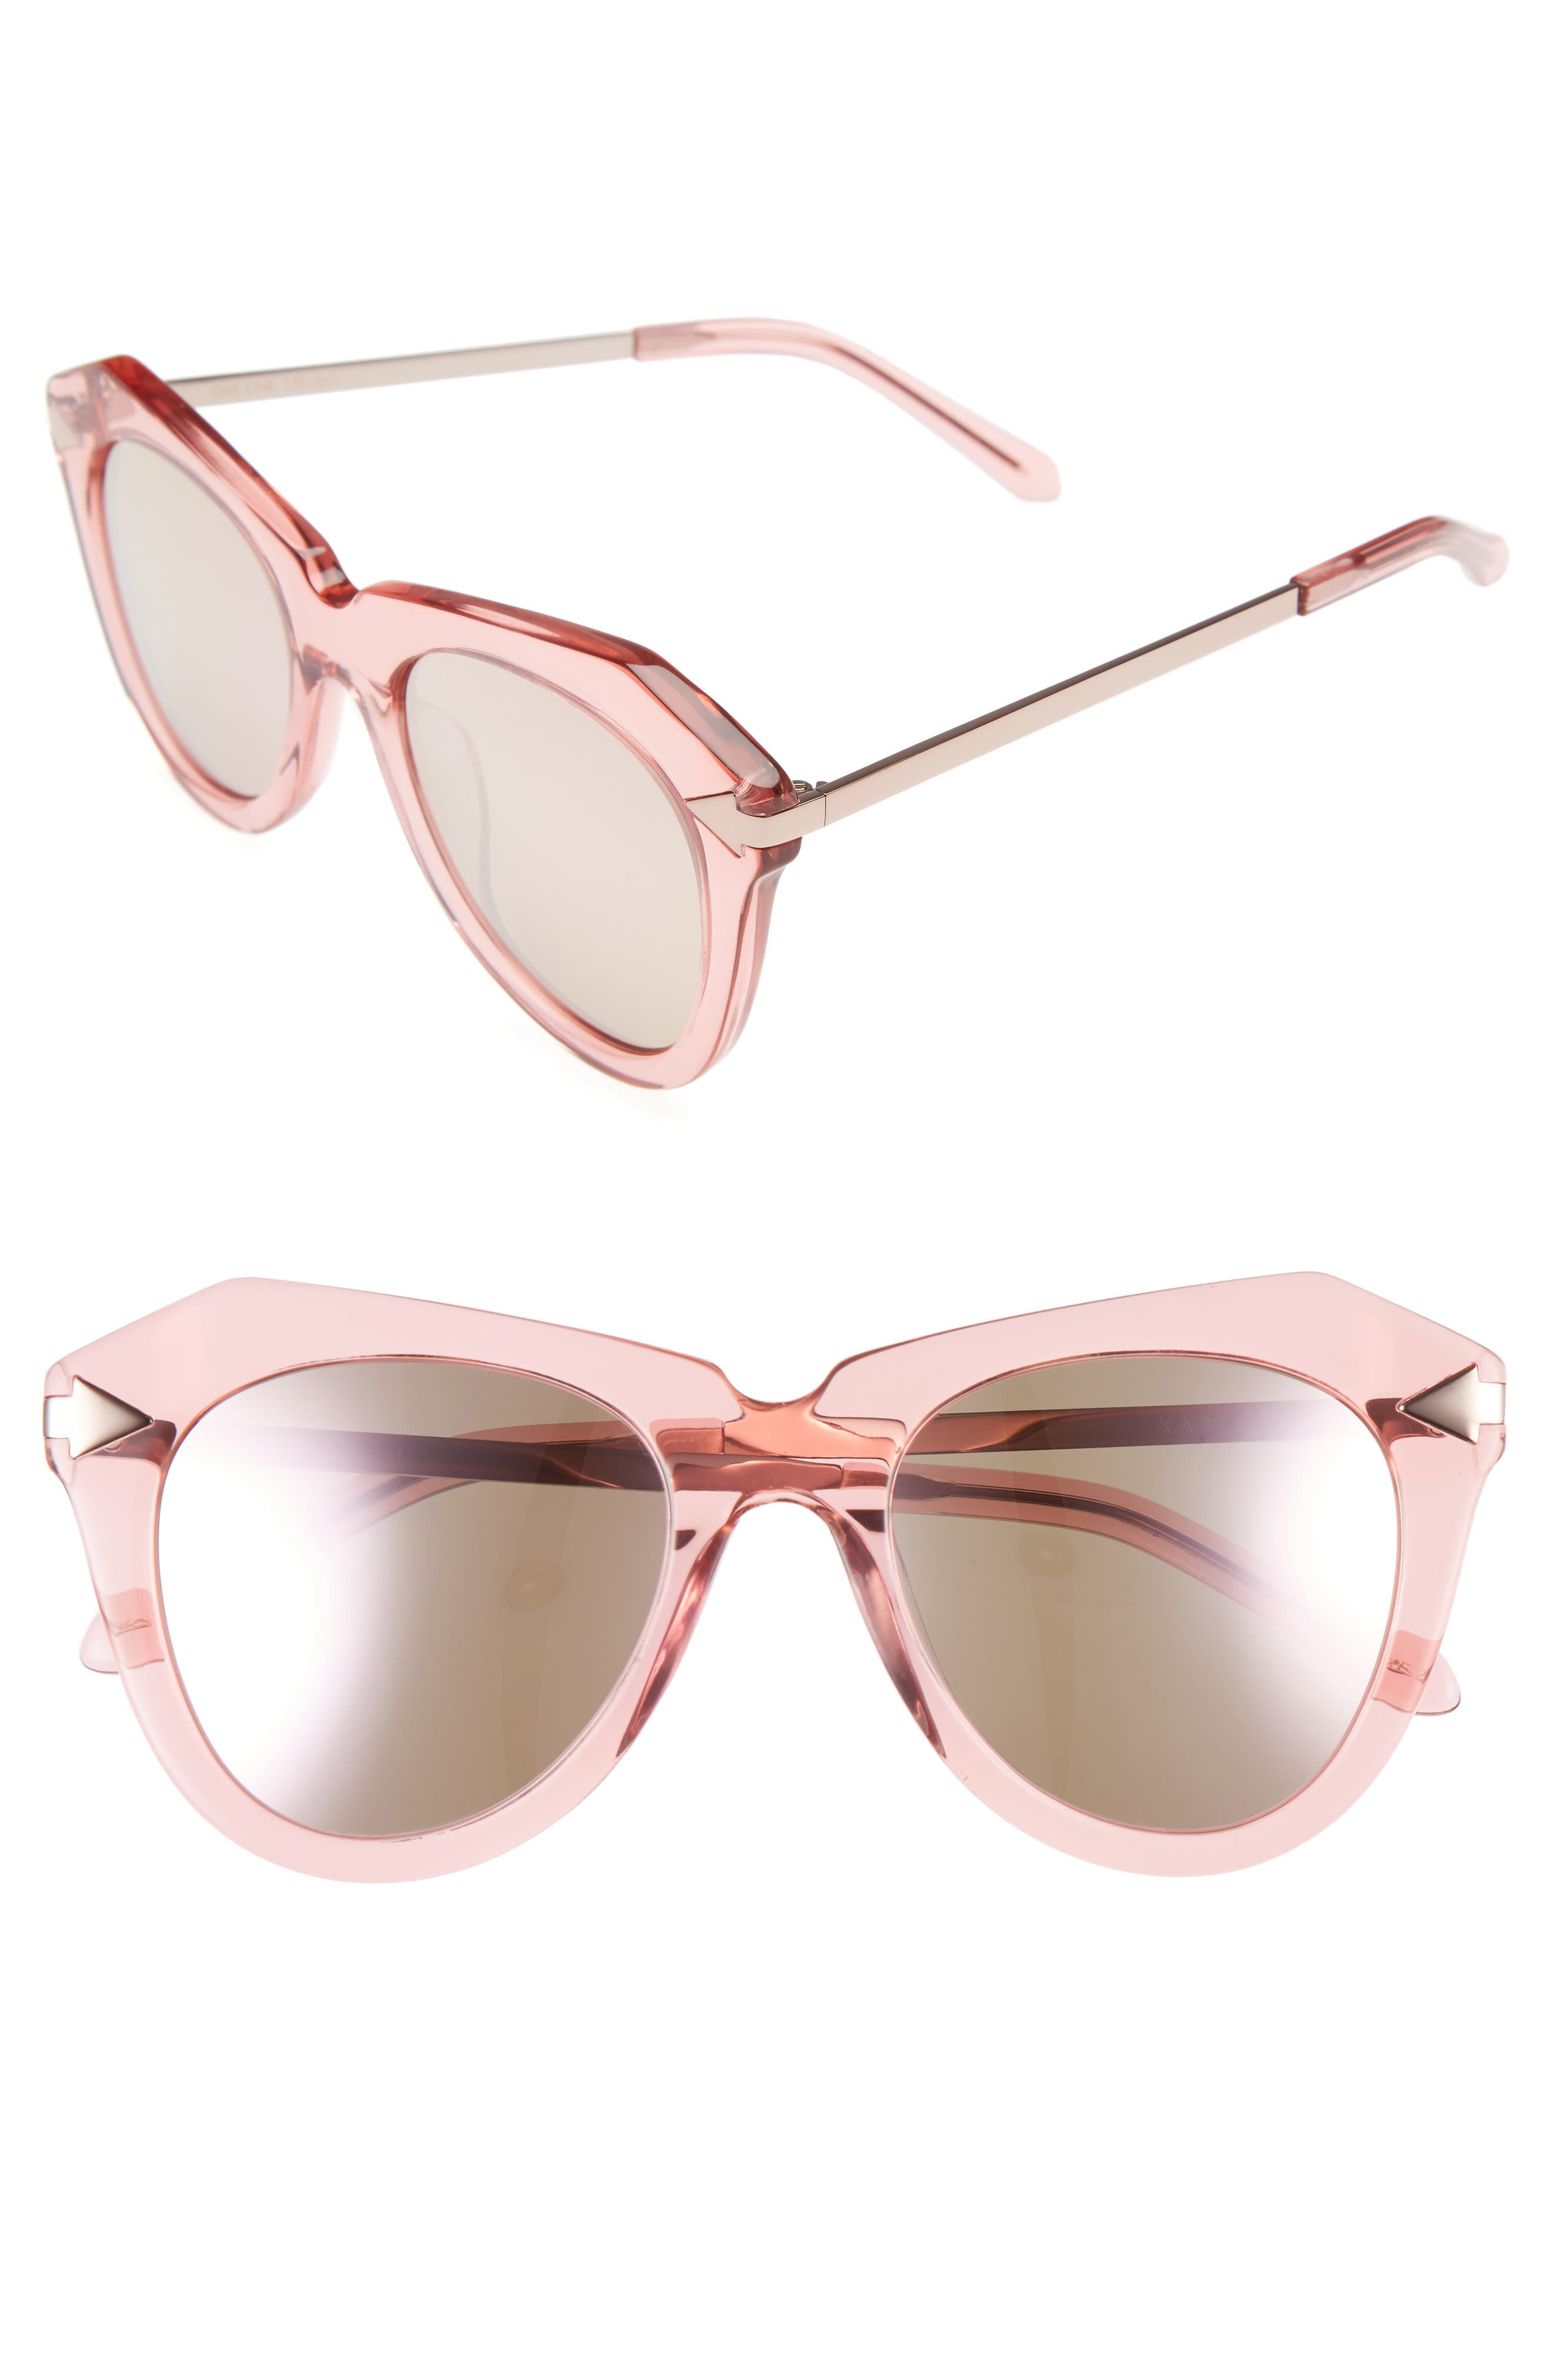 Main Image - Karen Walker One Star 50mm Retro Sunglasses